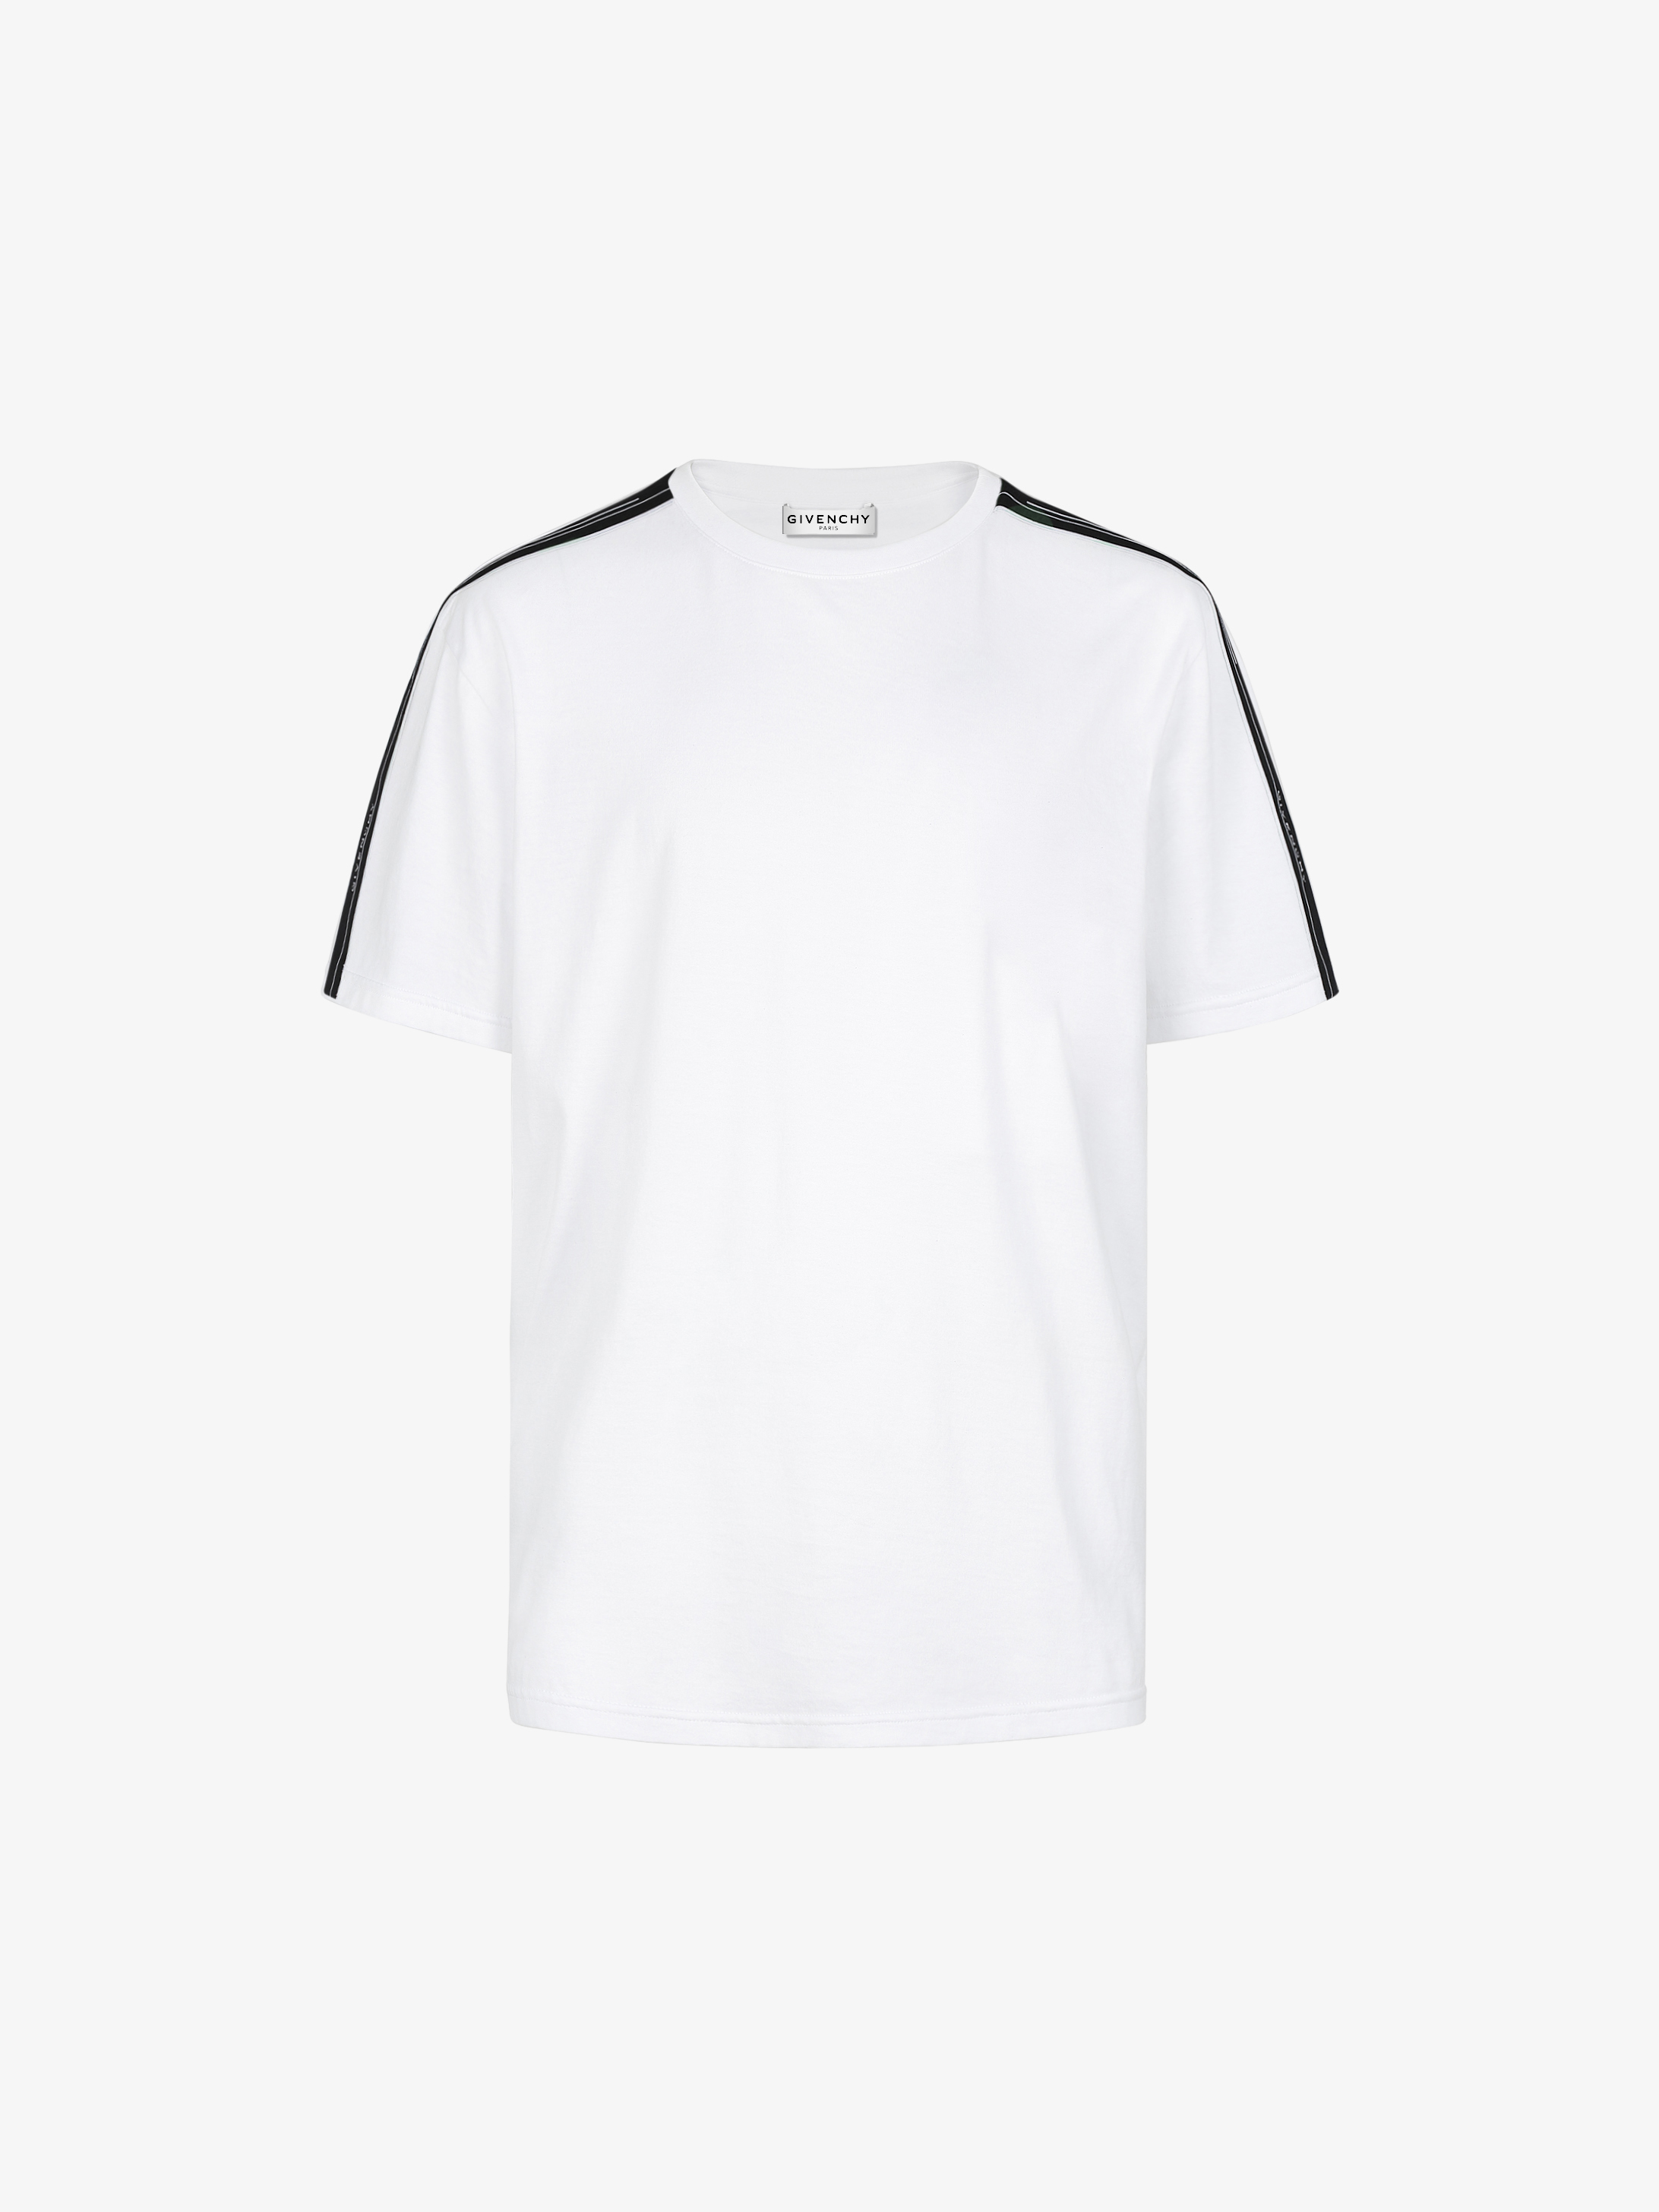 GIVENCHY contrasted t-shirt